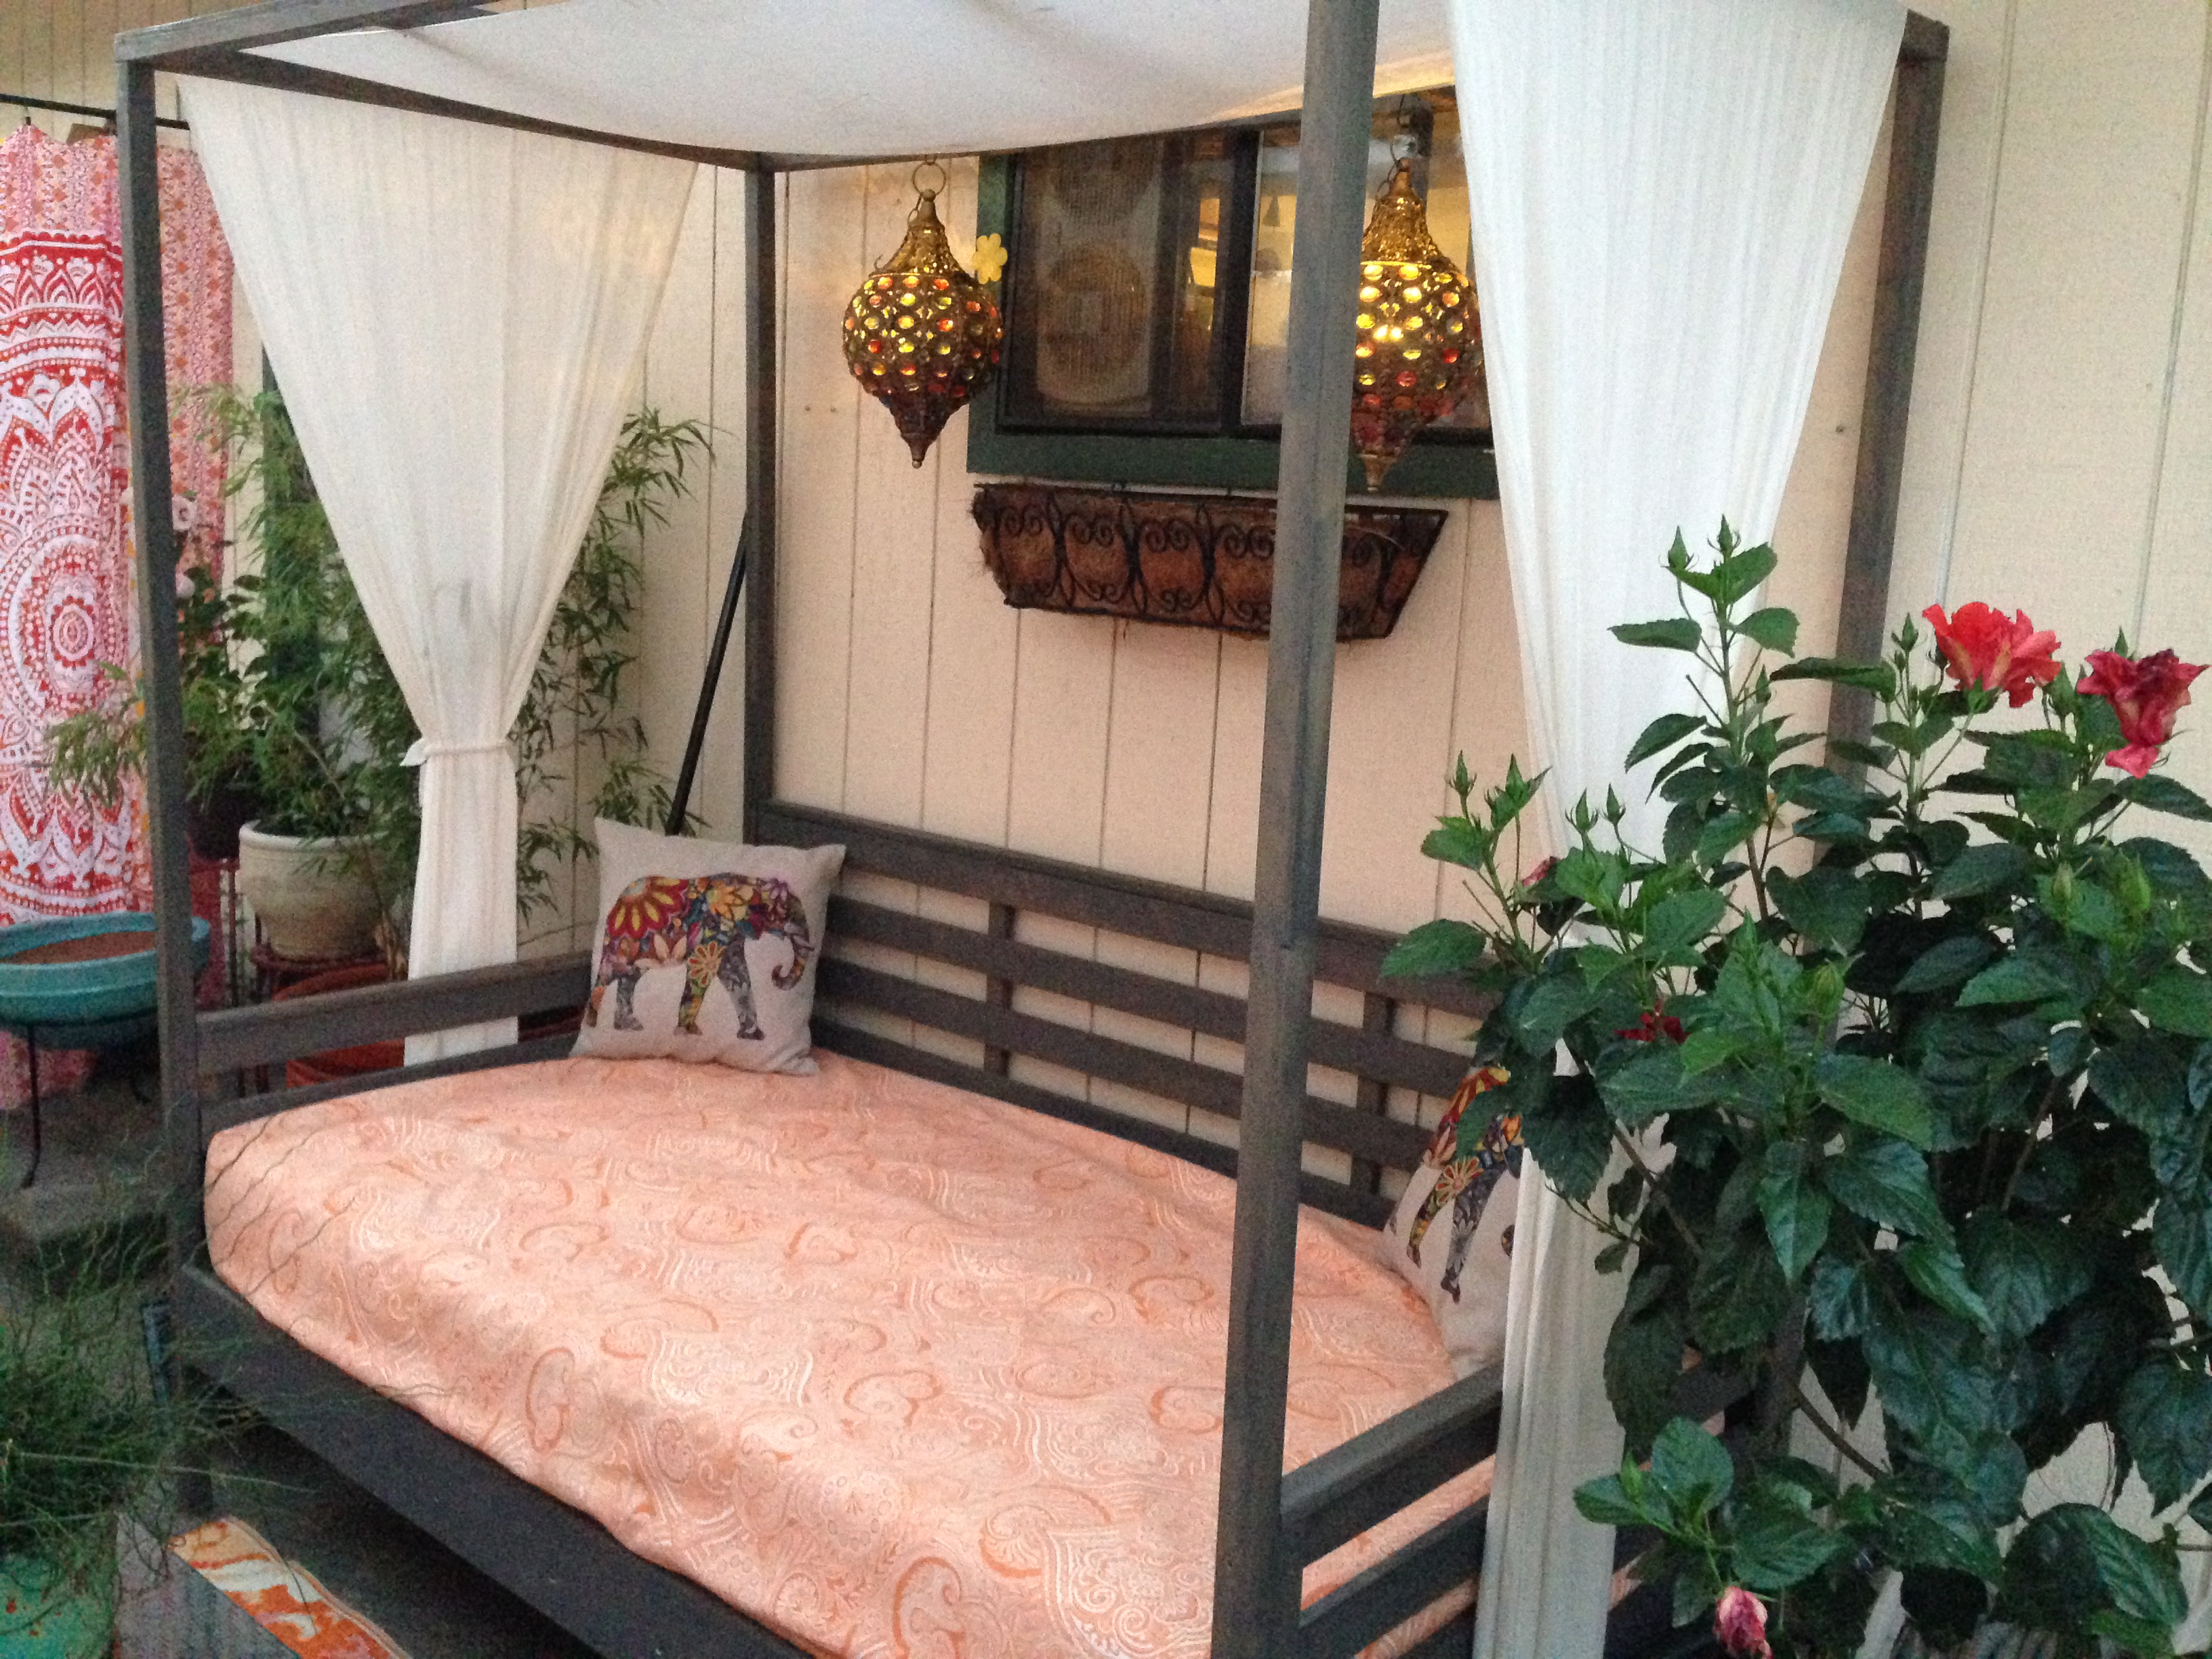 & Ana White | Outdoor Daybed with Canopy - DIY Projects